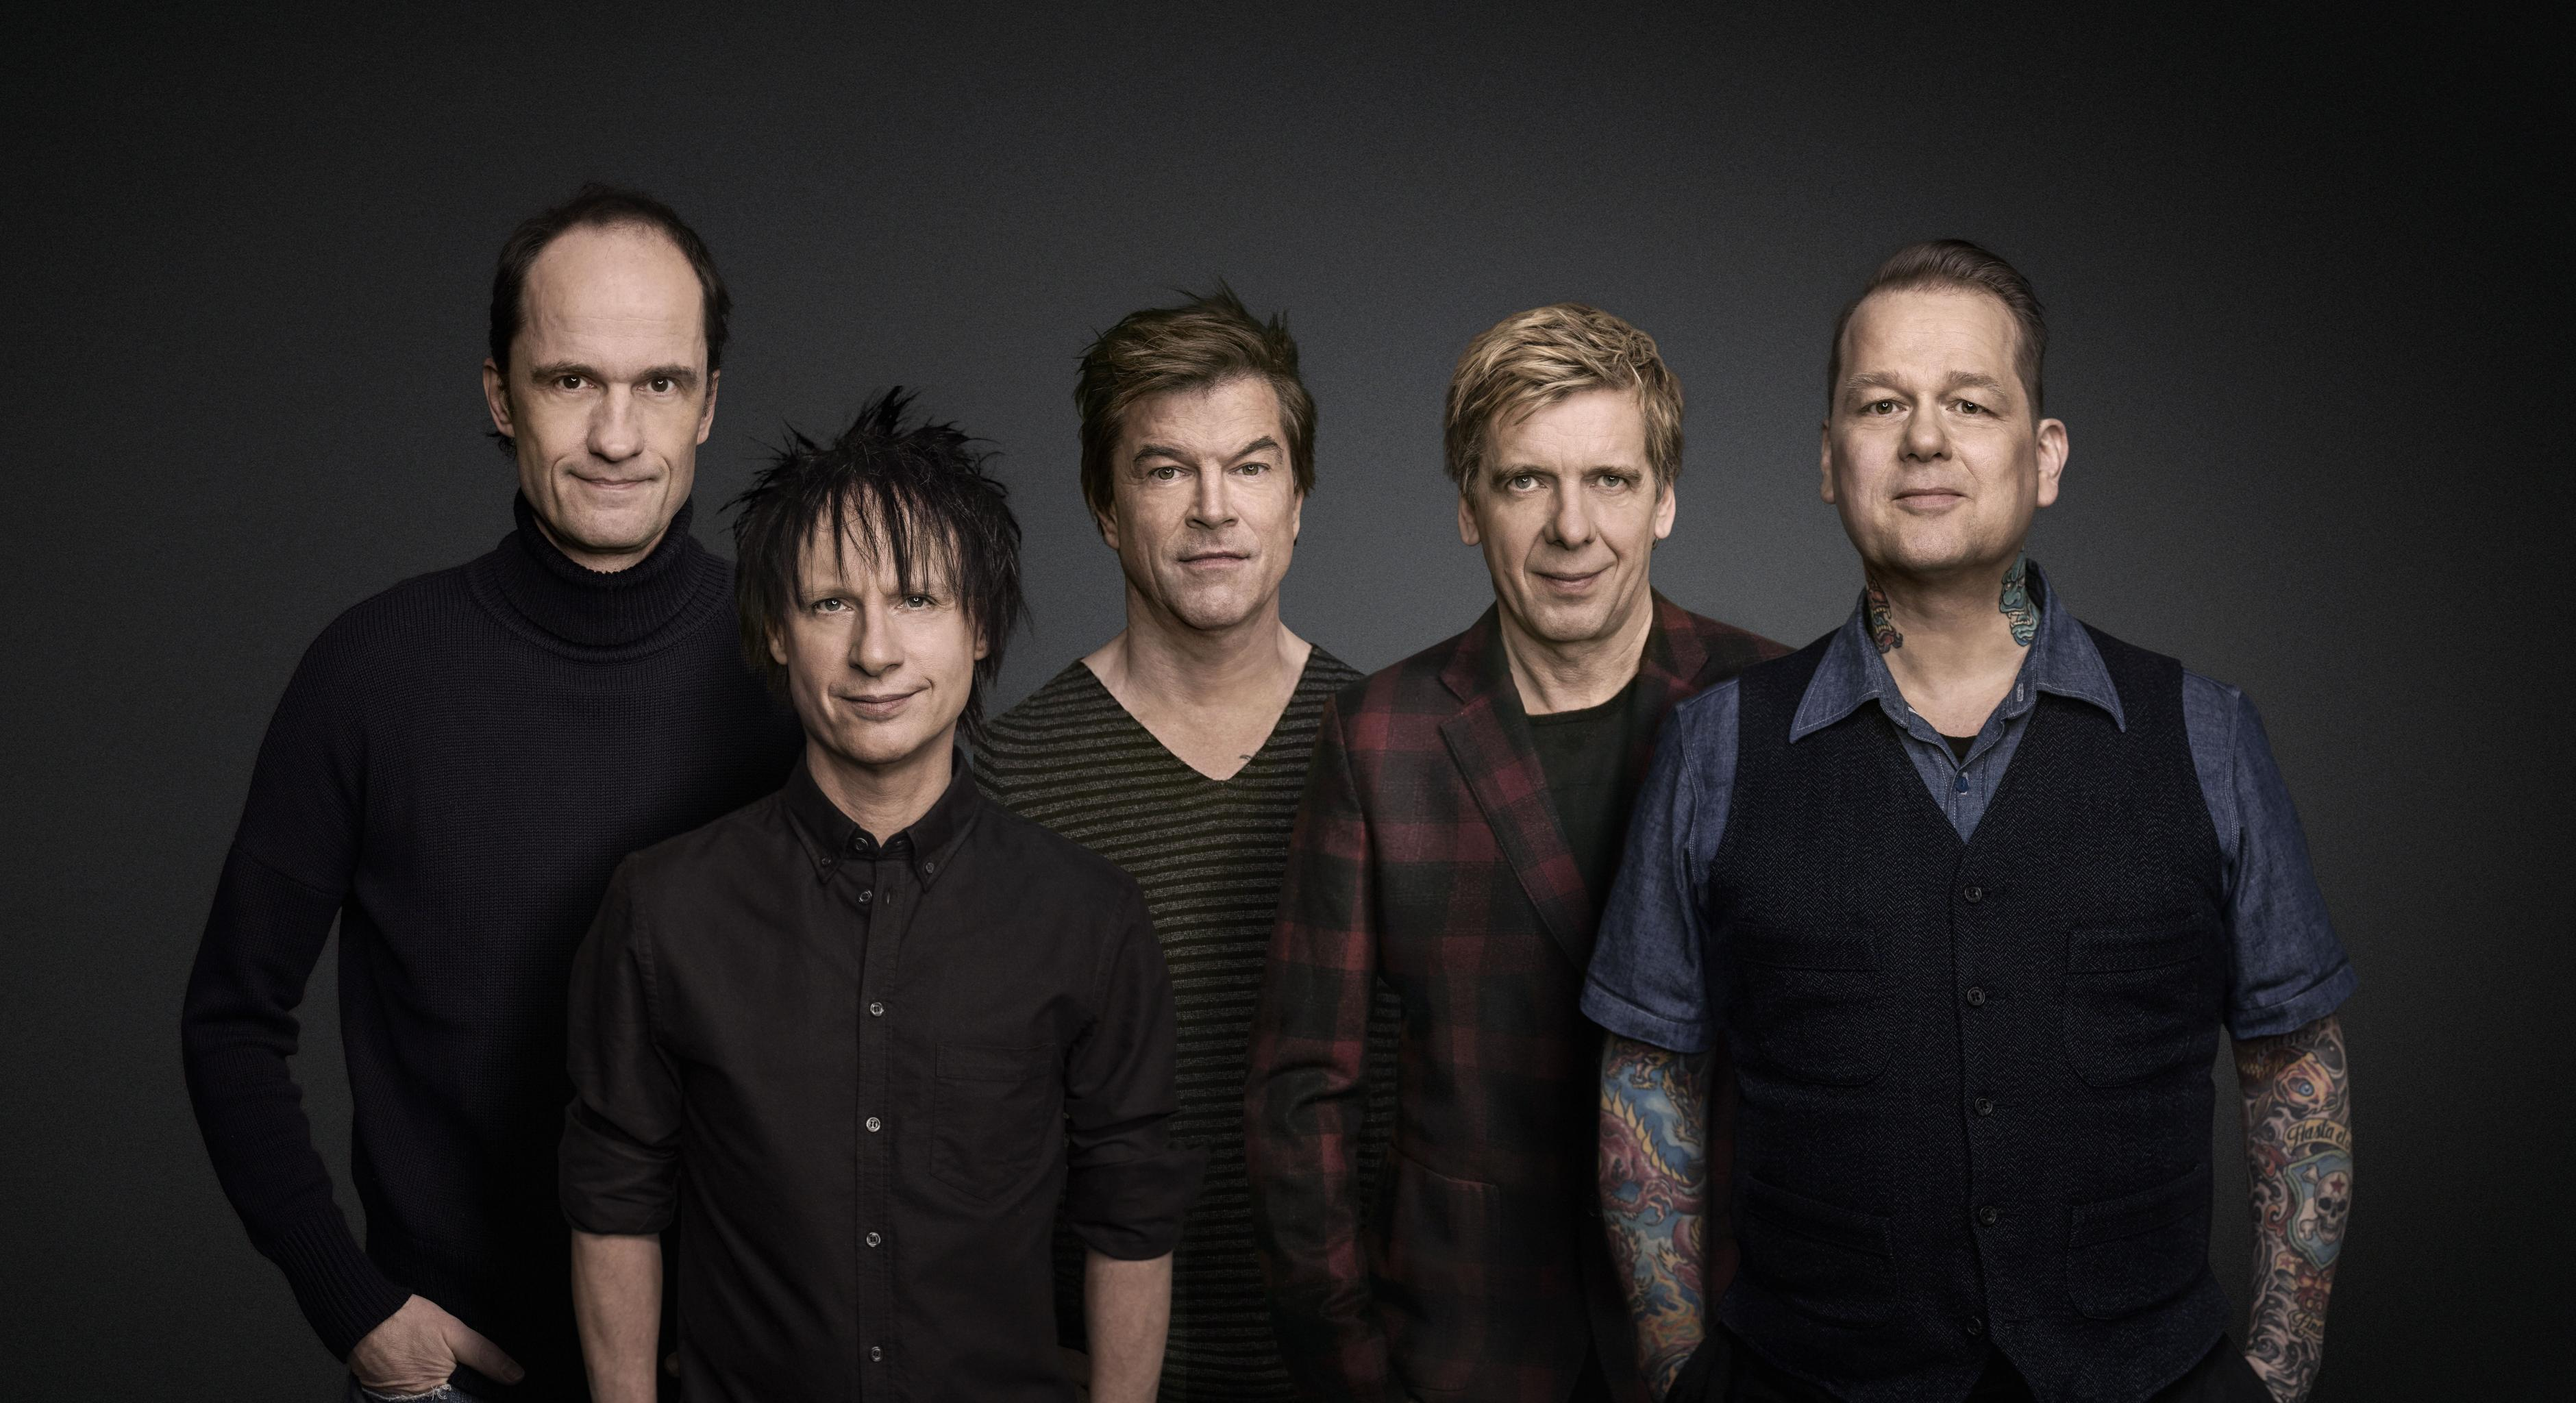 Die Toten Hosen mit Oxfam on tour